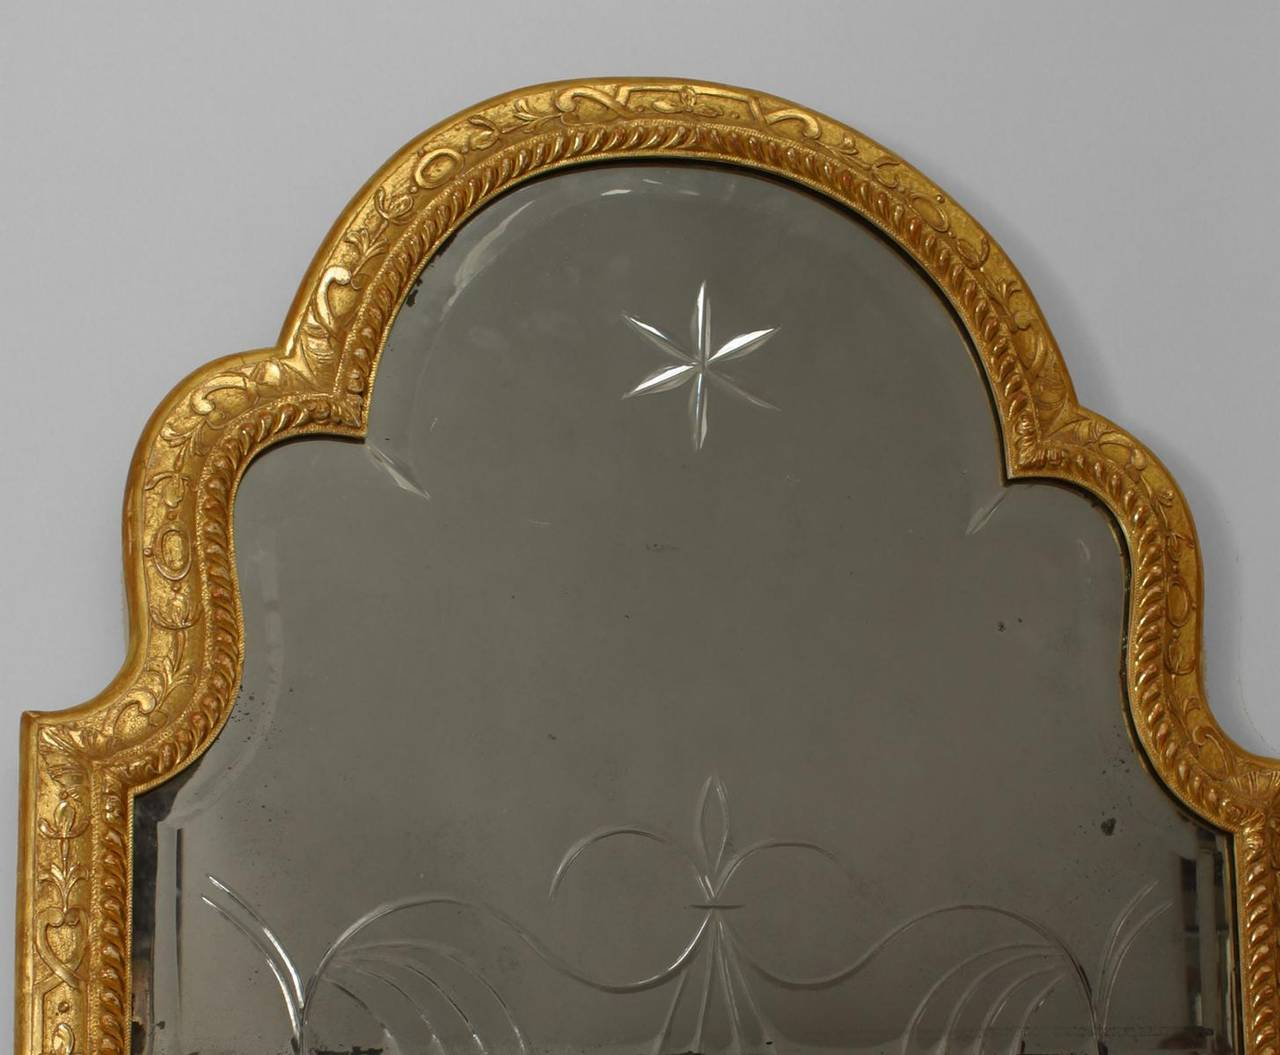 Beveled Early 18th c. English Queen Anne Gilt Wall Mirror, c. 1705 For Sale